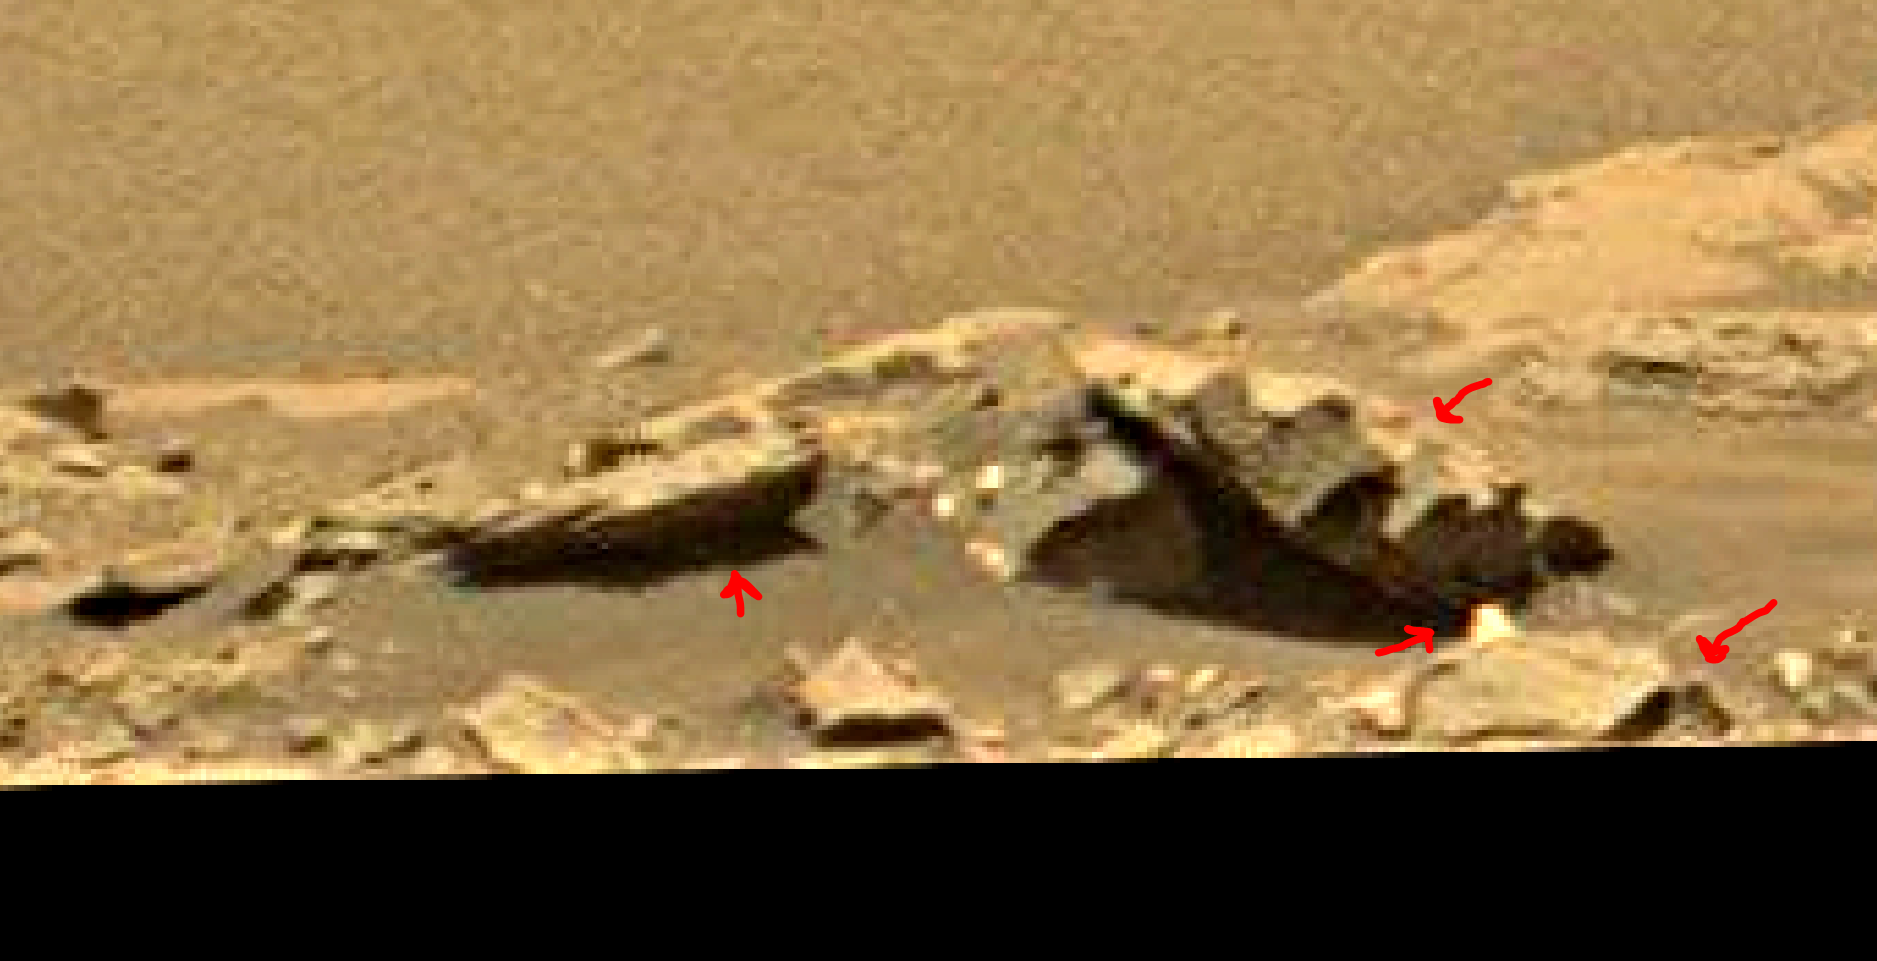 mars sol 1353 anomaly-artifacts 11a was life on mars